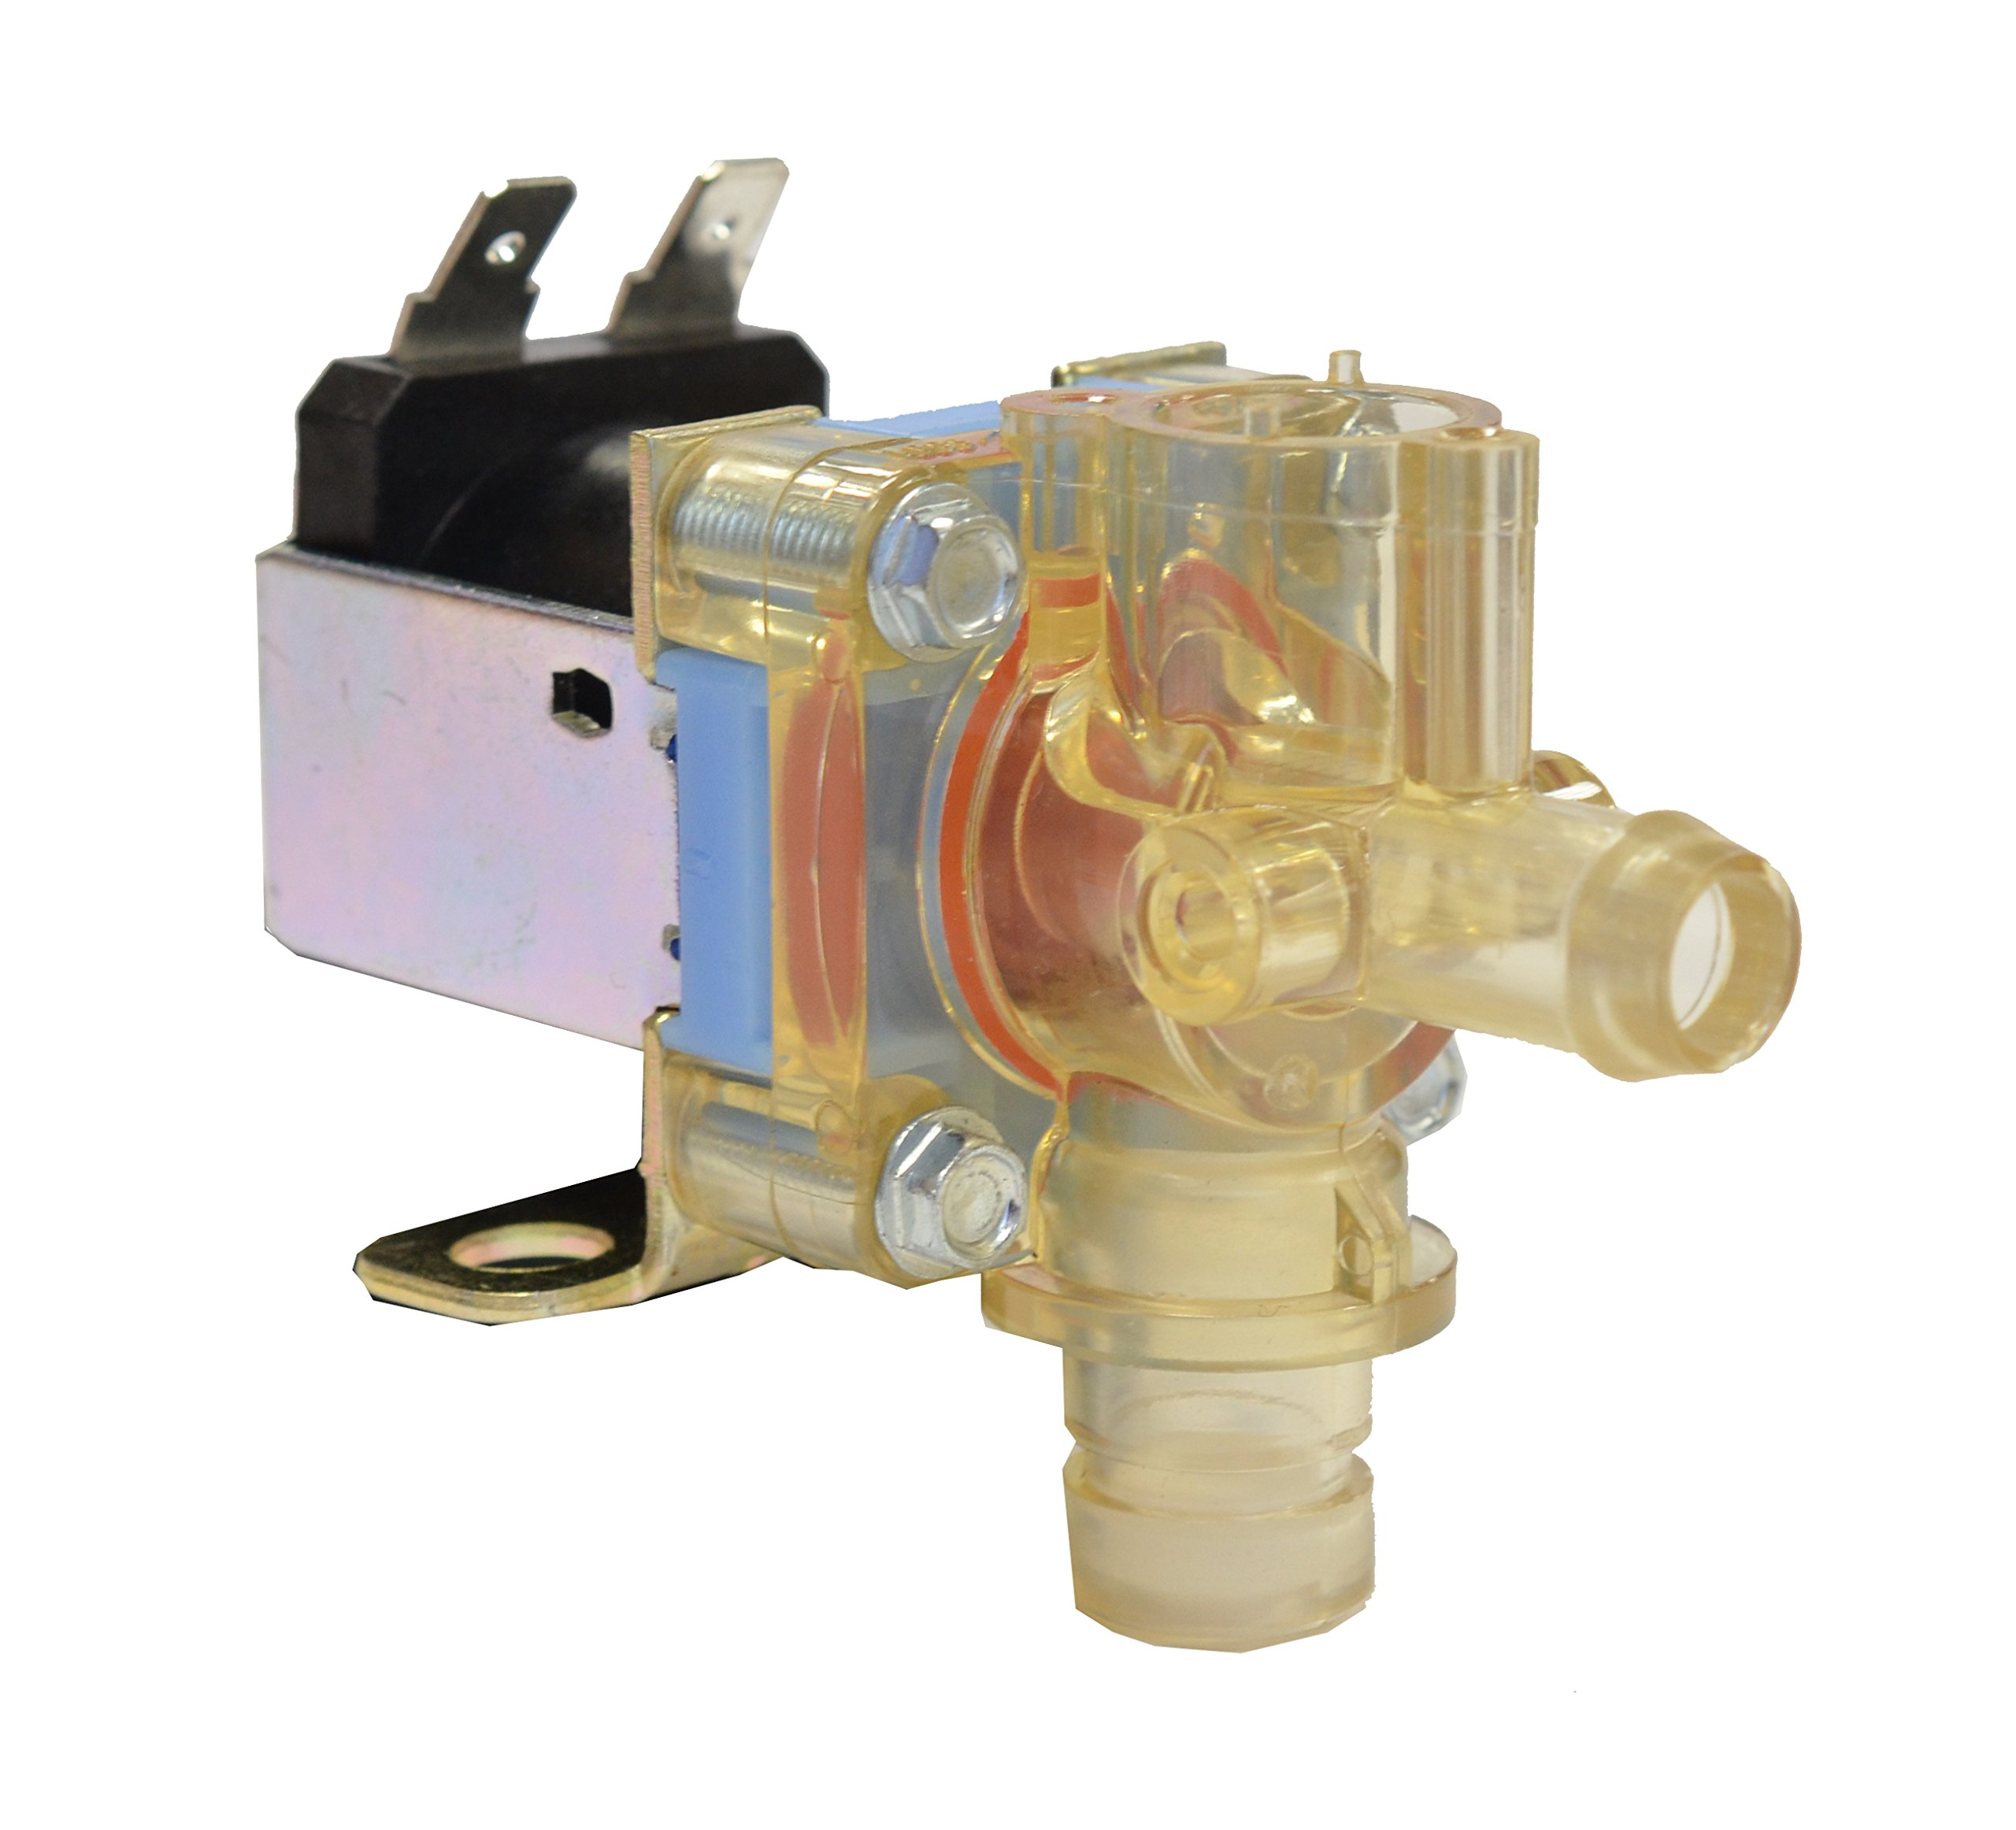 Wilbur Curtis WC-844-101 Non-Adjustable Bypass Valve by Wilbur Curtis (Image #2)